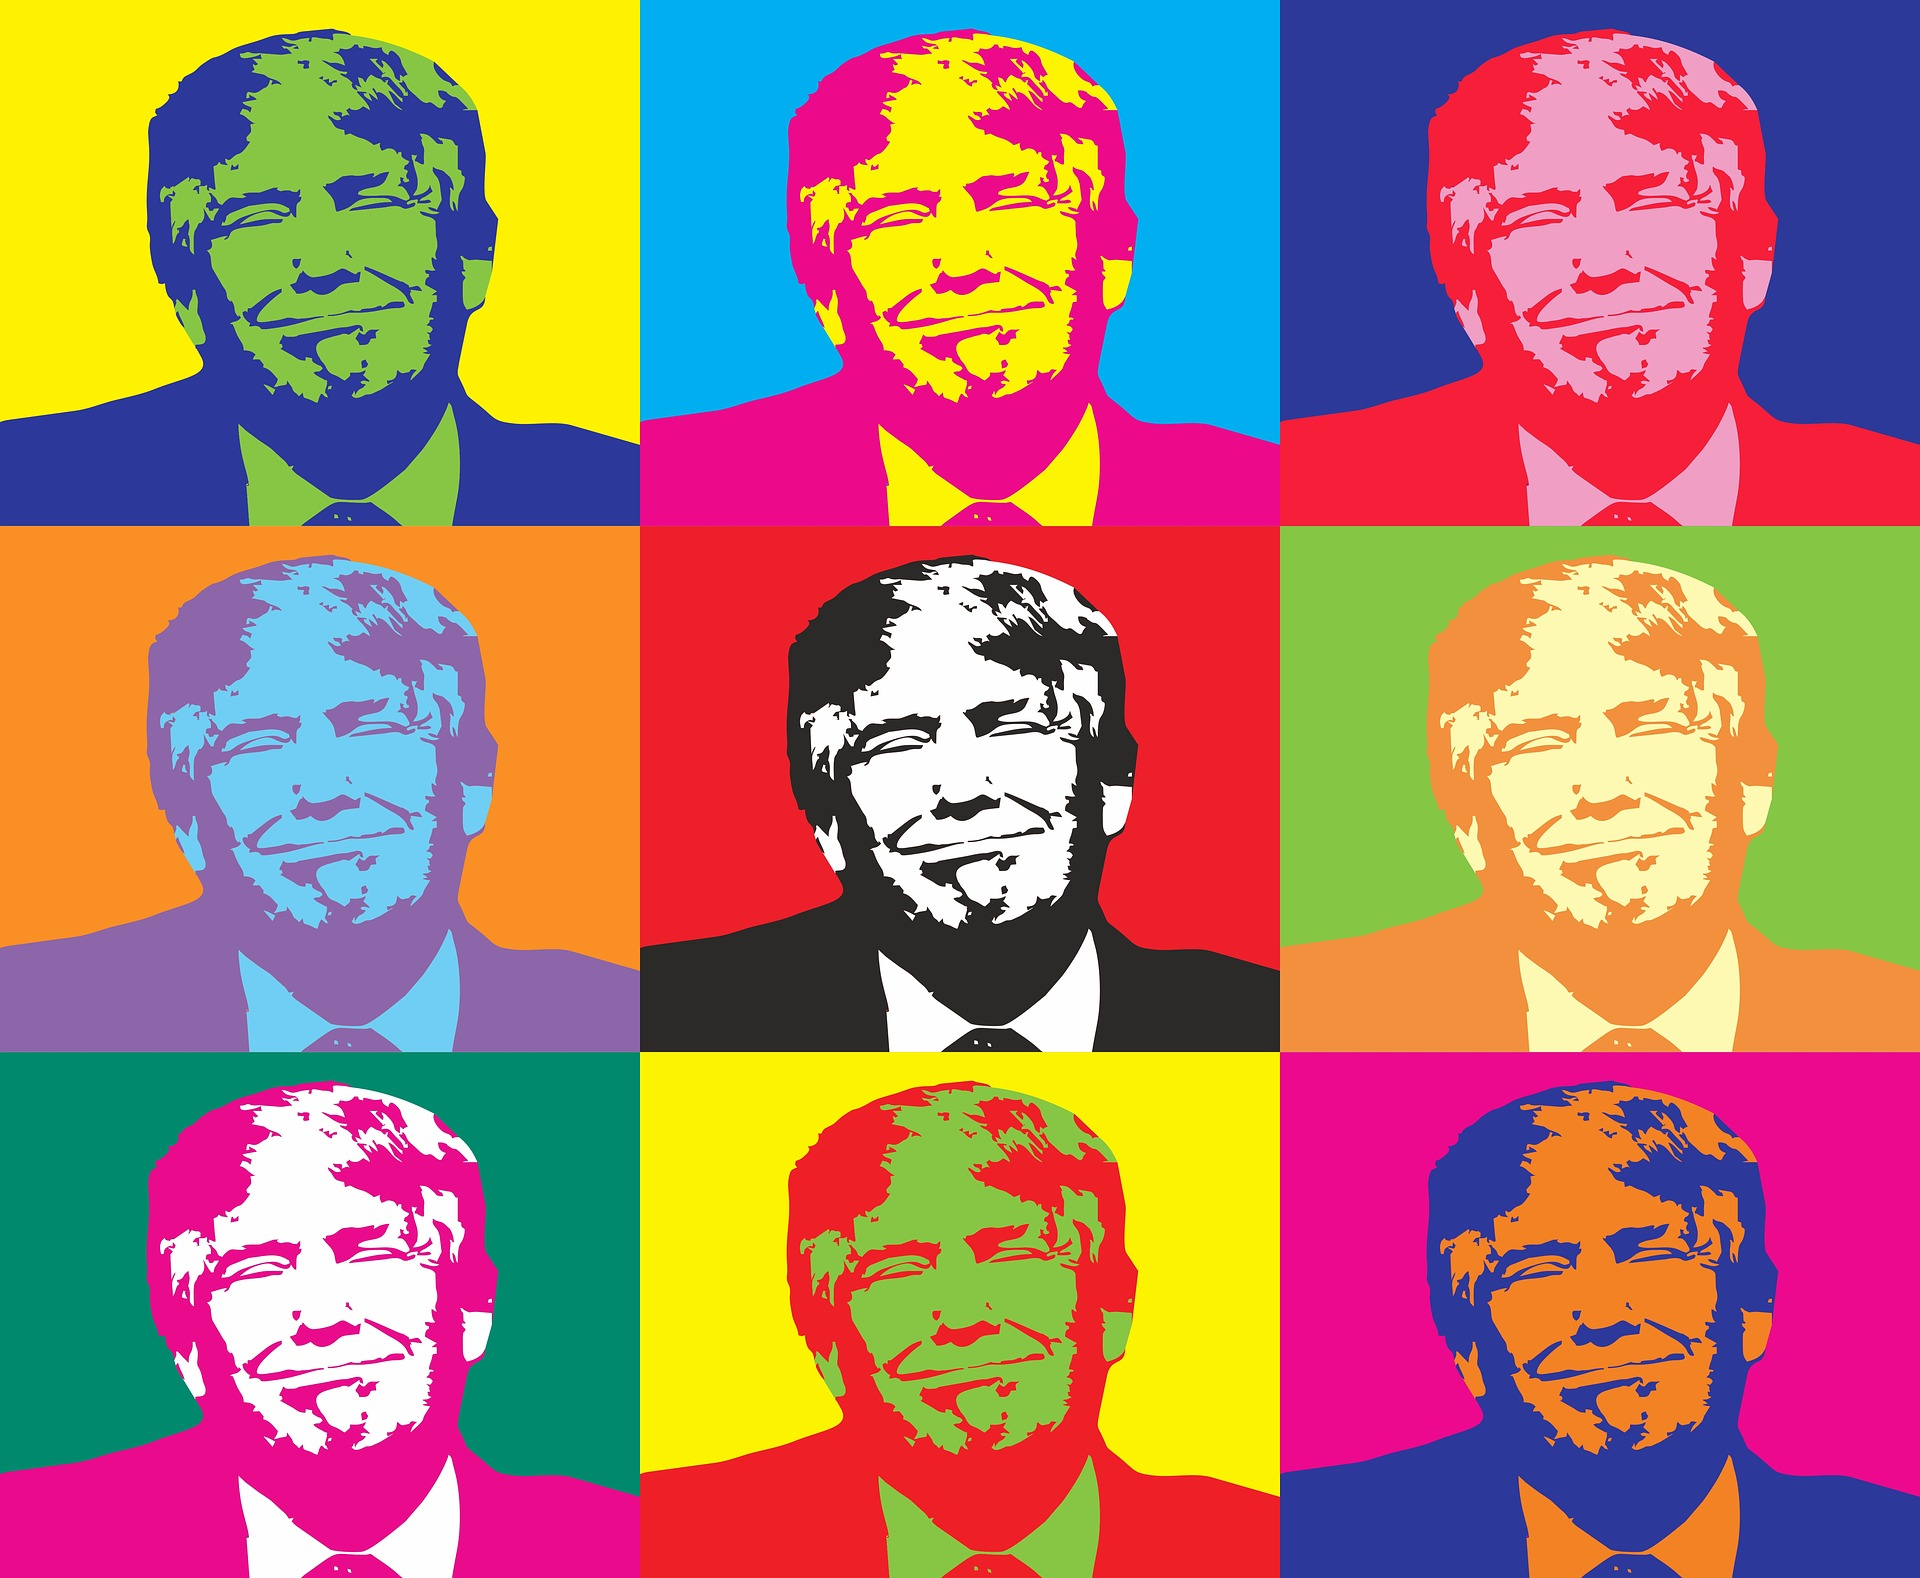 A series of images of former US president Donald Trump in the style of Andy Warhol